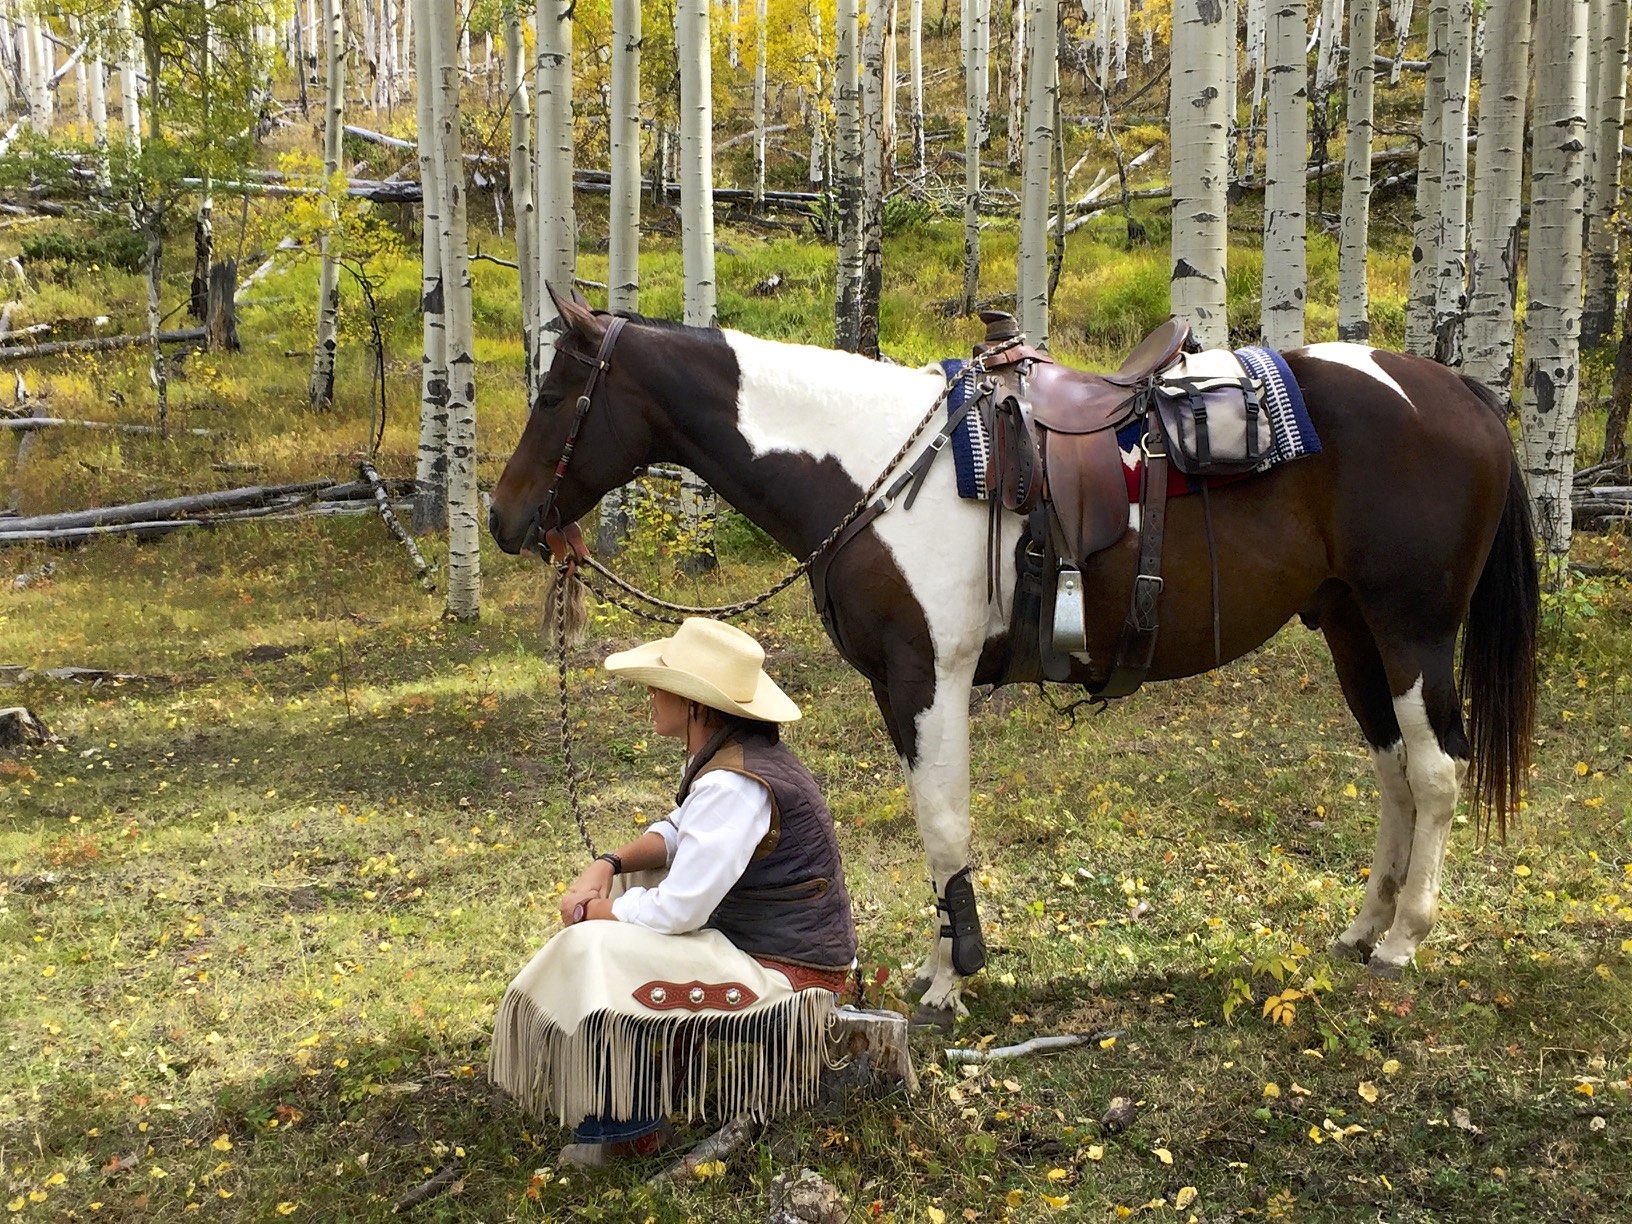 Listen deeply to the sounds of nature at this dude ranch retreat for women.